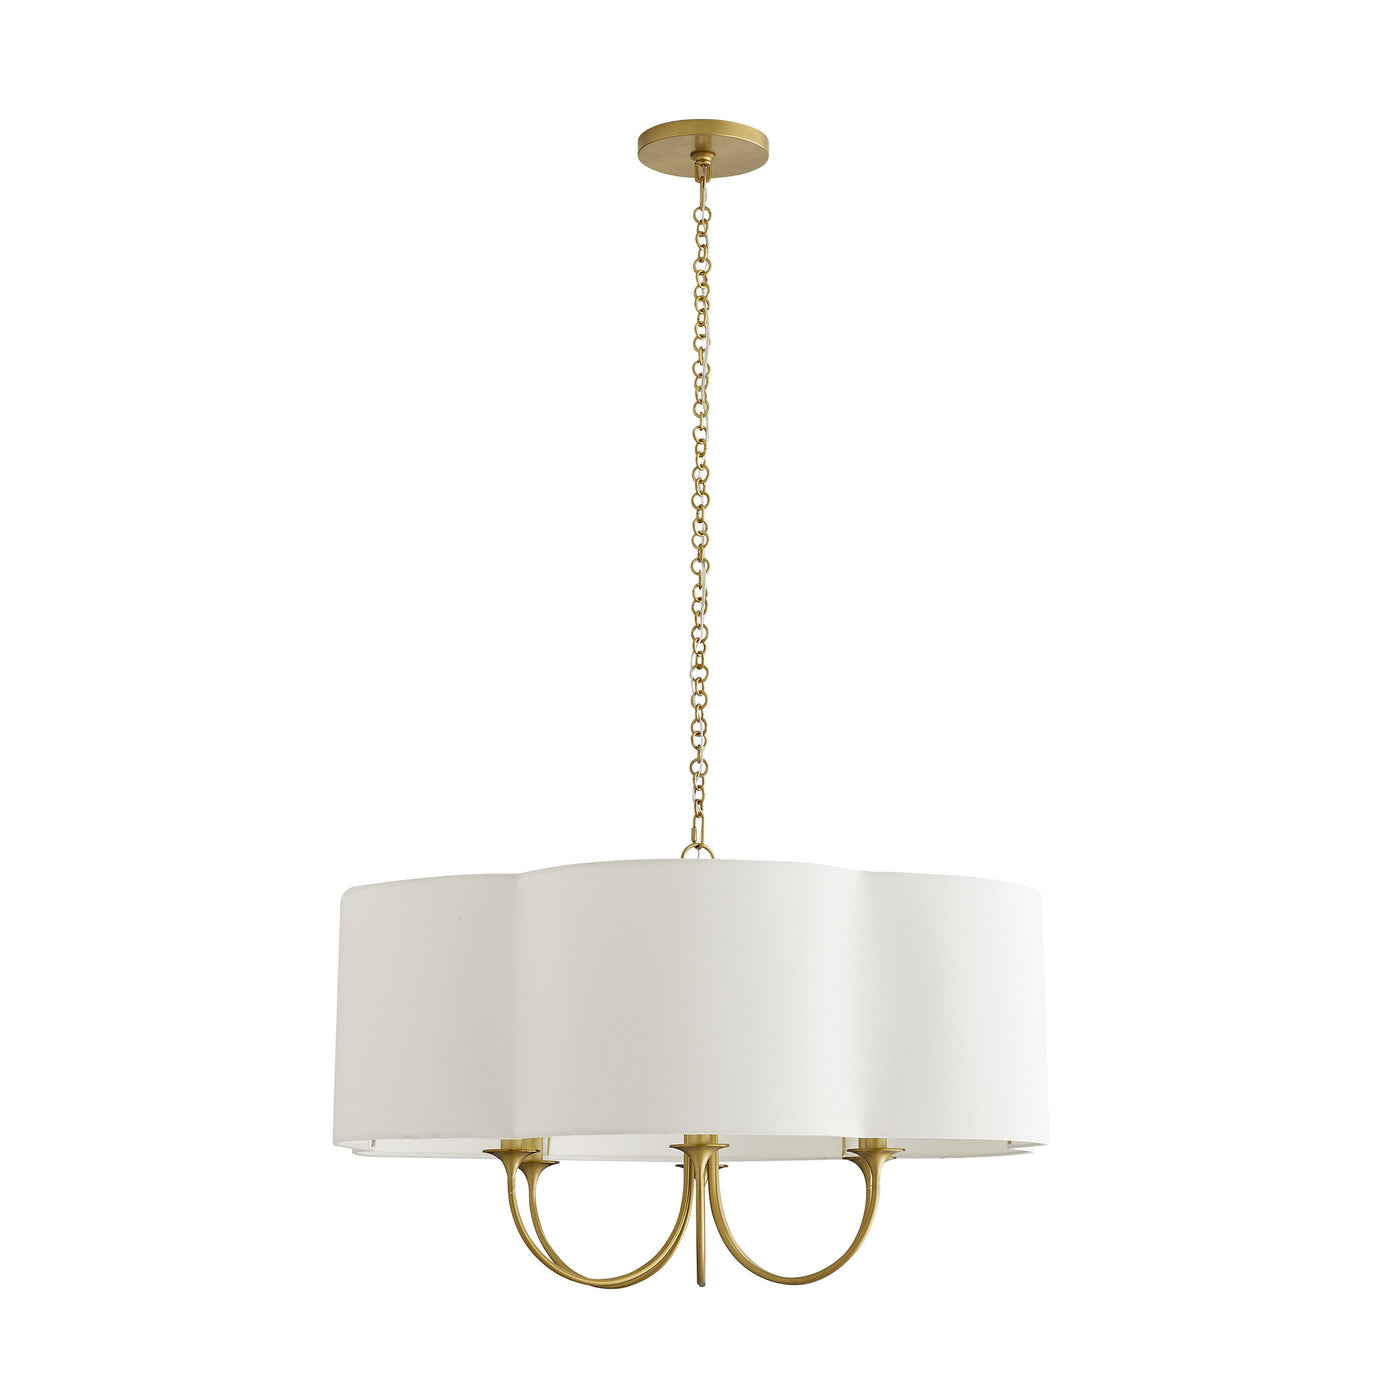 arteriors rittenhouse chandelier antique brass full view